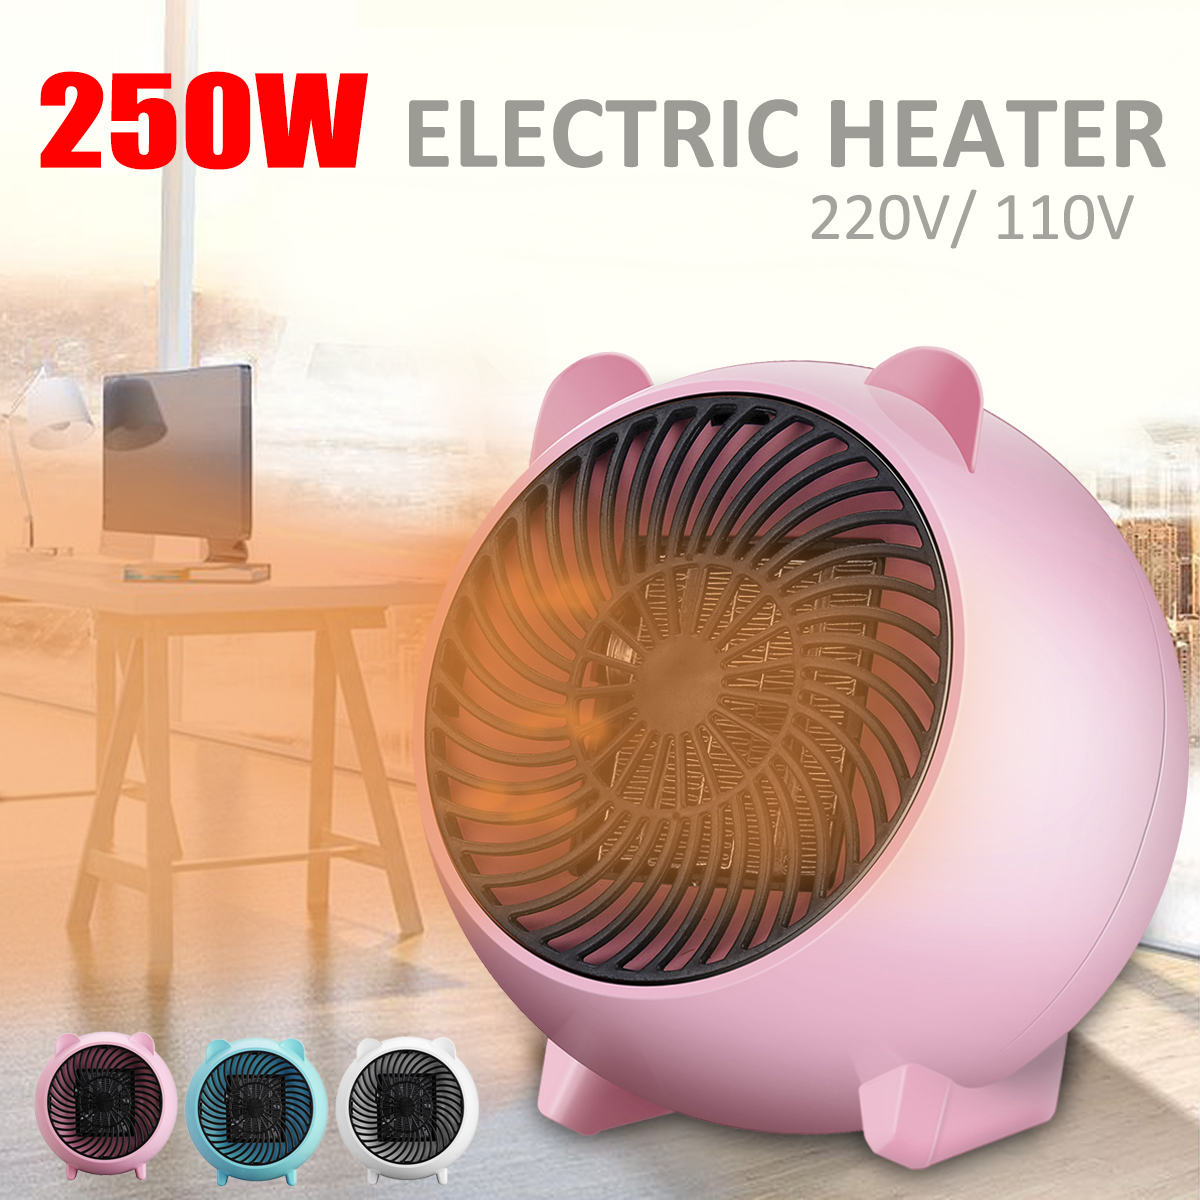 250W 10㎡ Intelligent Mini Heating Fan Space Electric Heater Warmer Home Office Desktop Temperature Control Power Saving Safety Winter Bask Tool